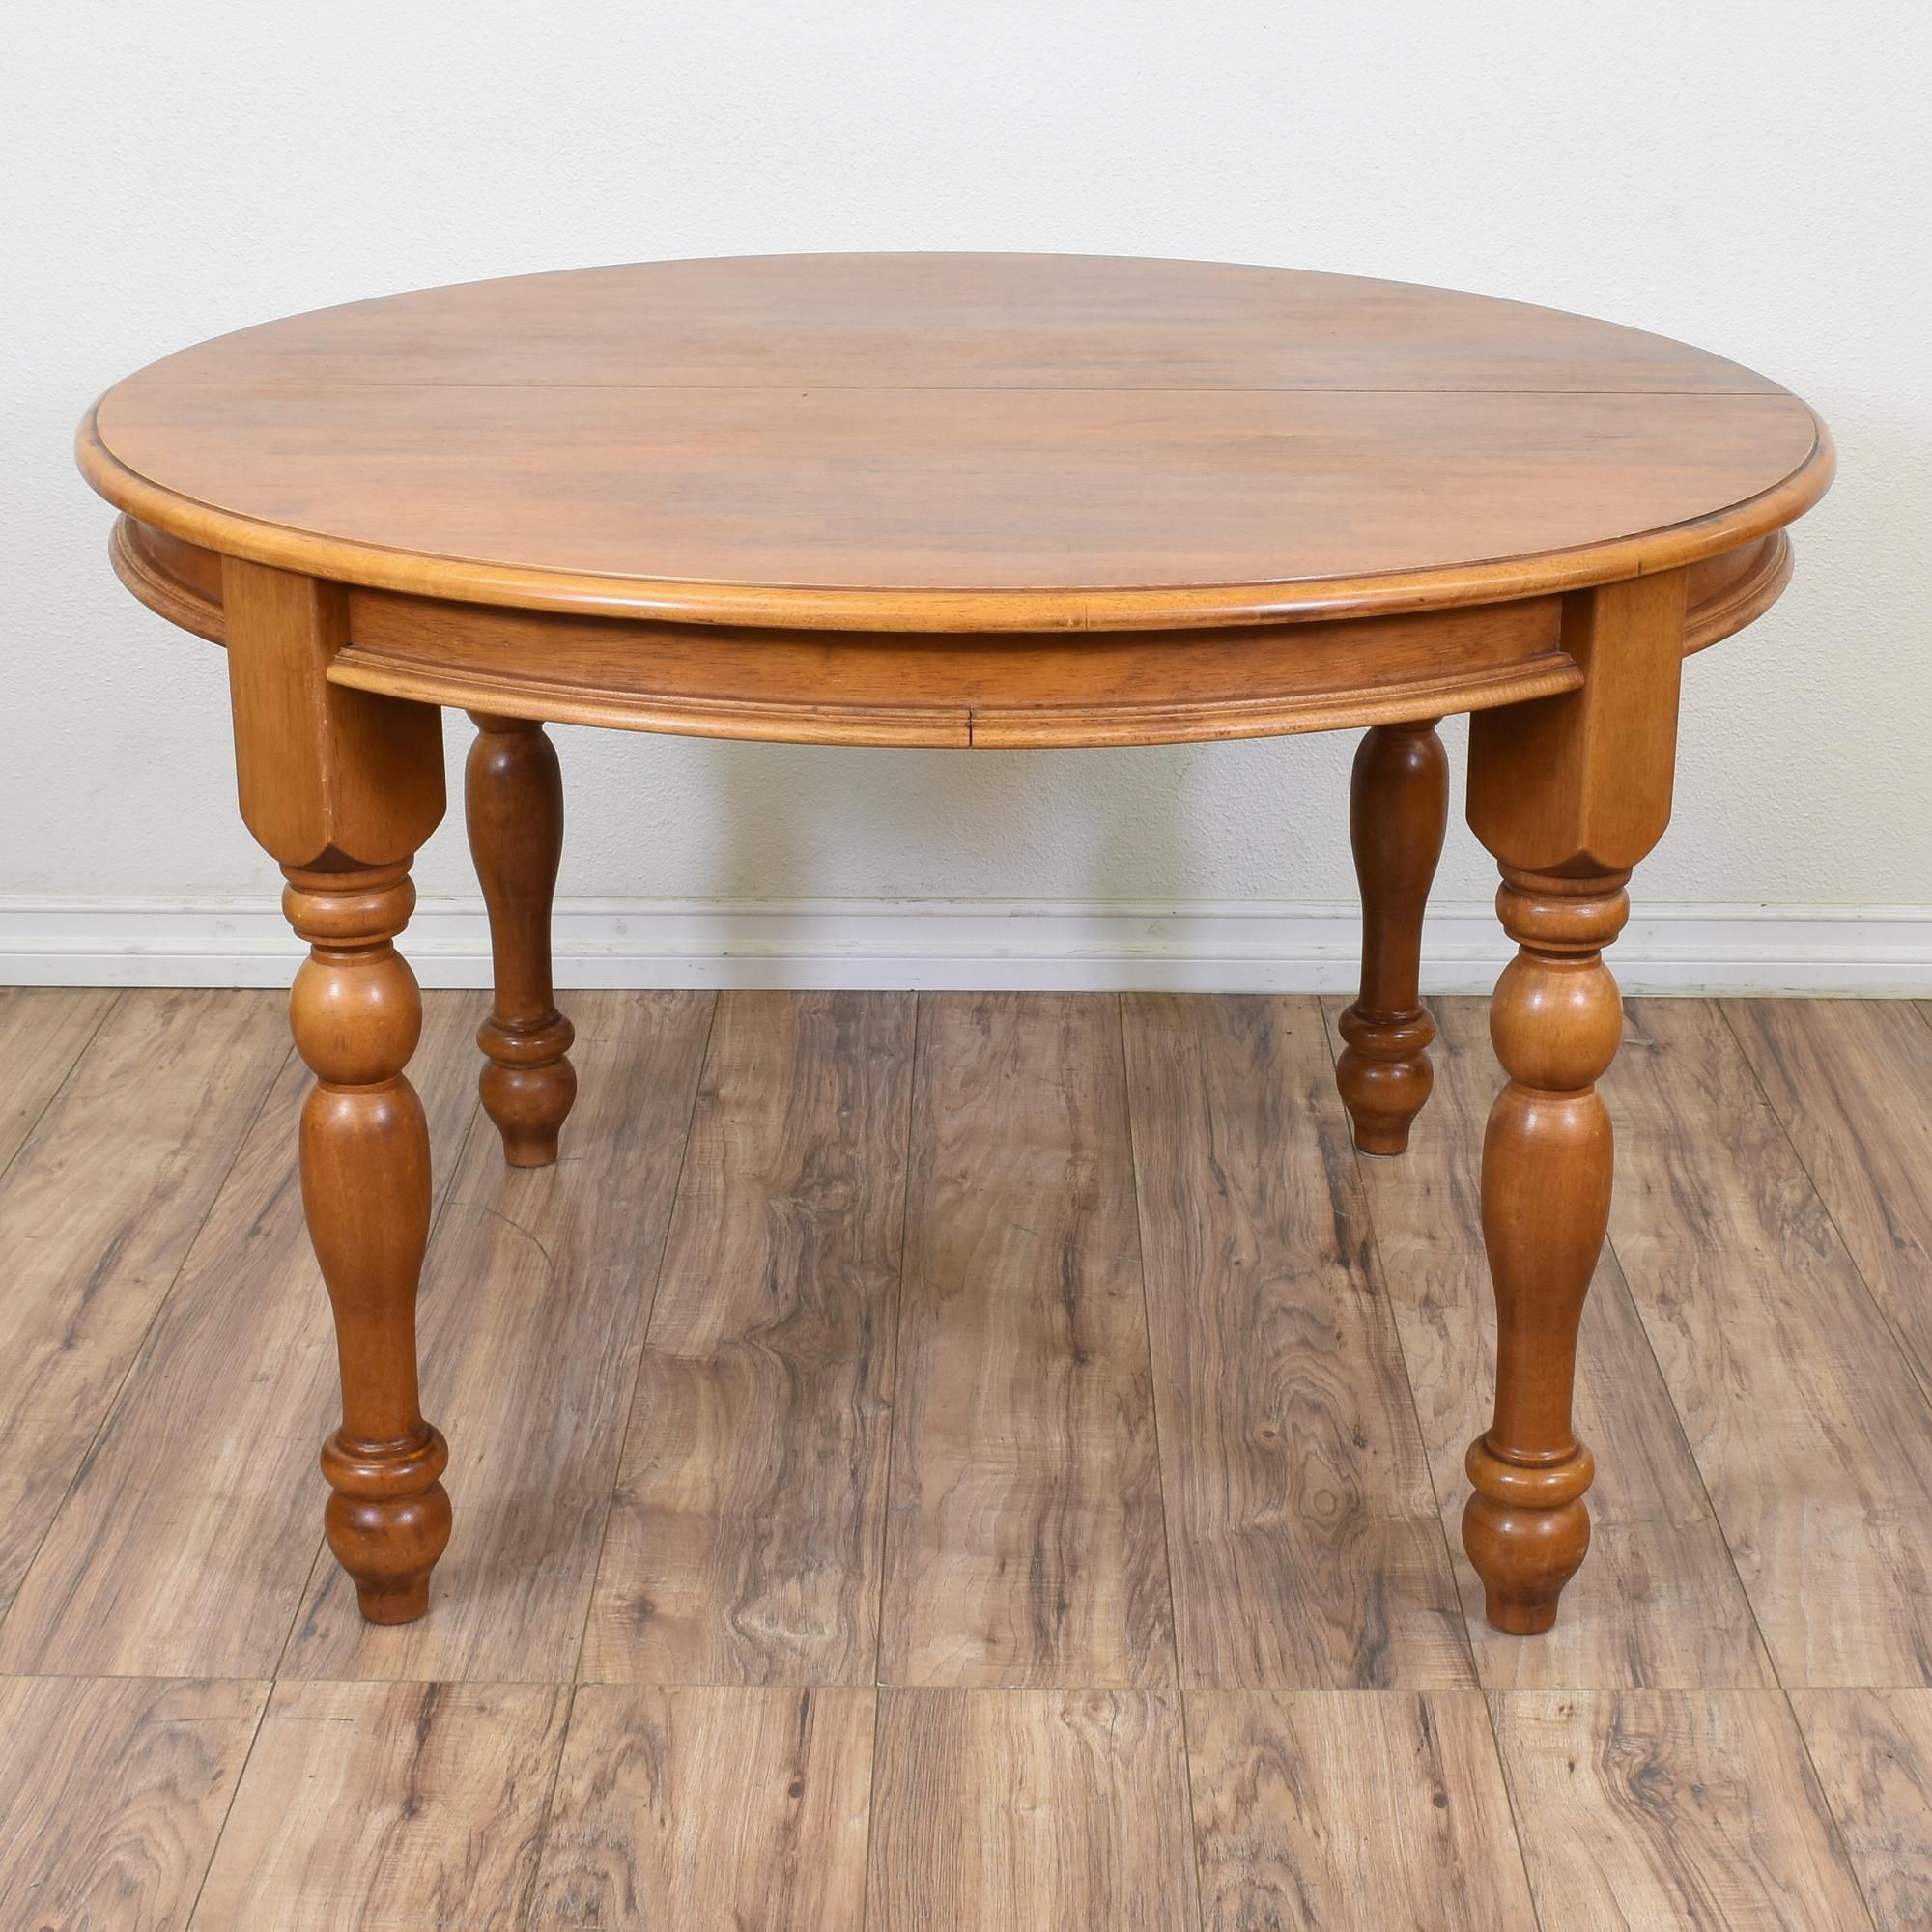 This Round Dining Table Is Featured In A Solid Wood With A Glossy Maple Finish This Table Is In Good Condition With Carv Maple Dining Table Dining Table Table